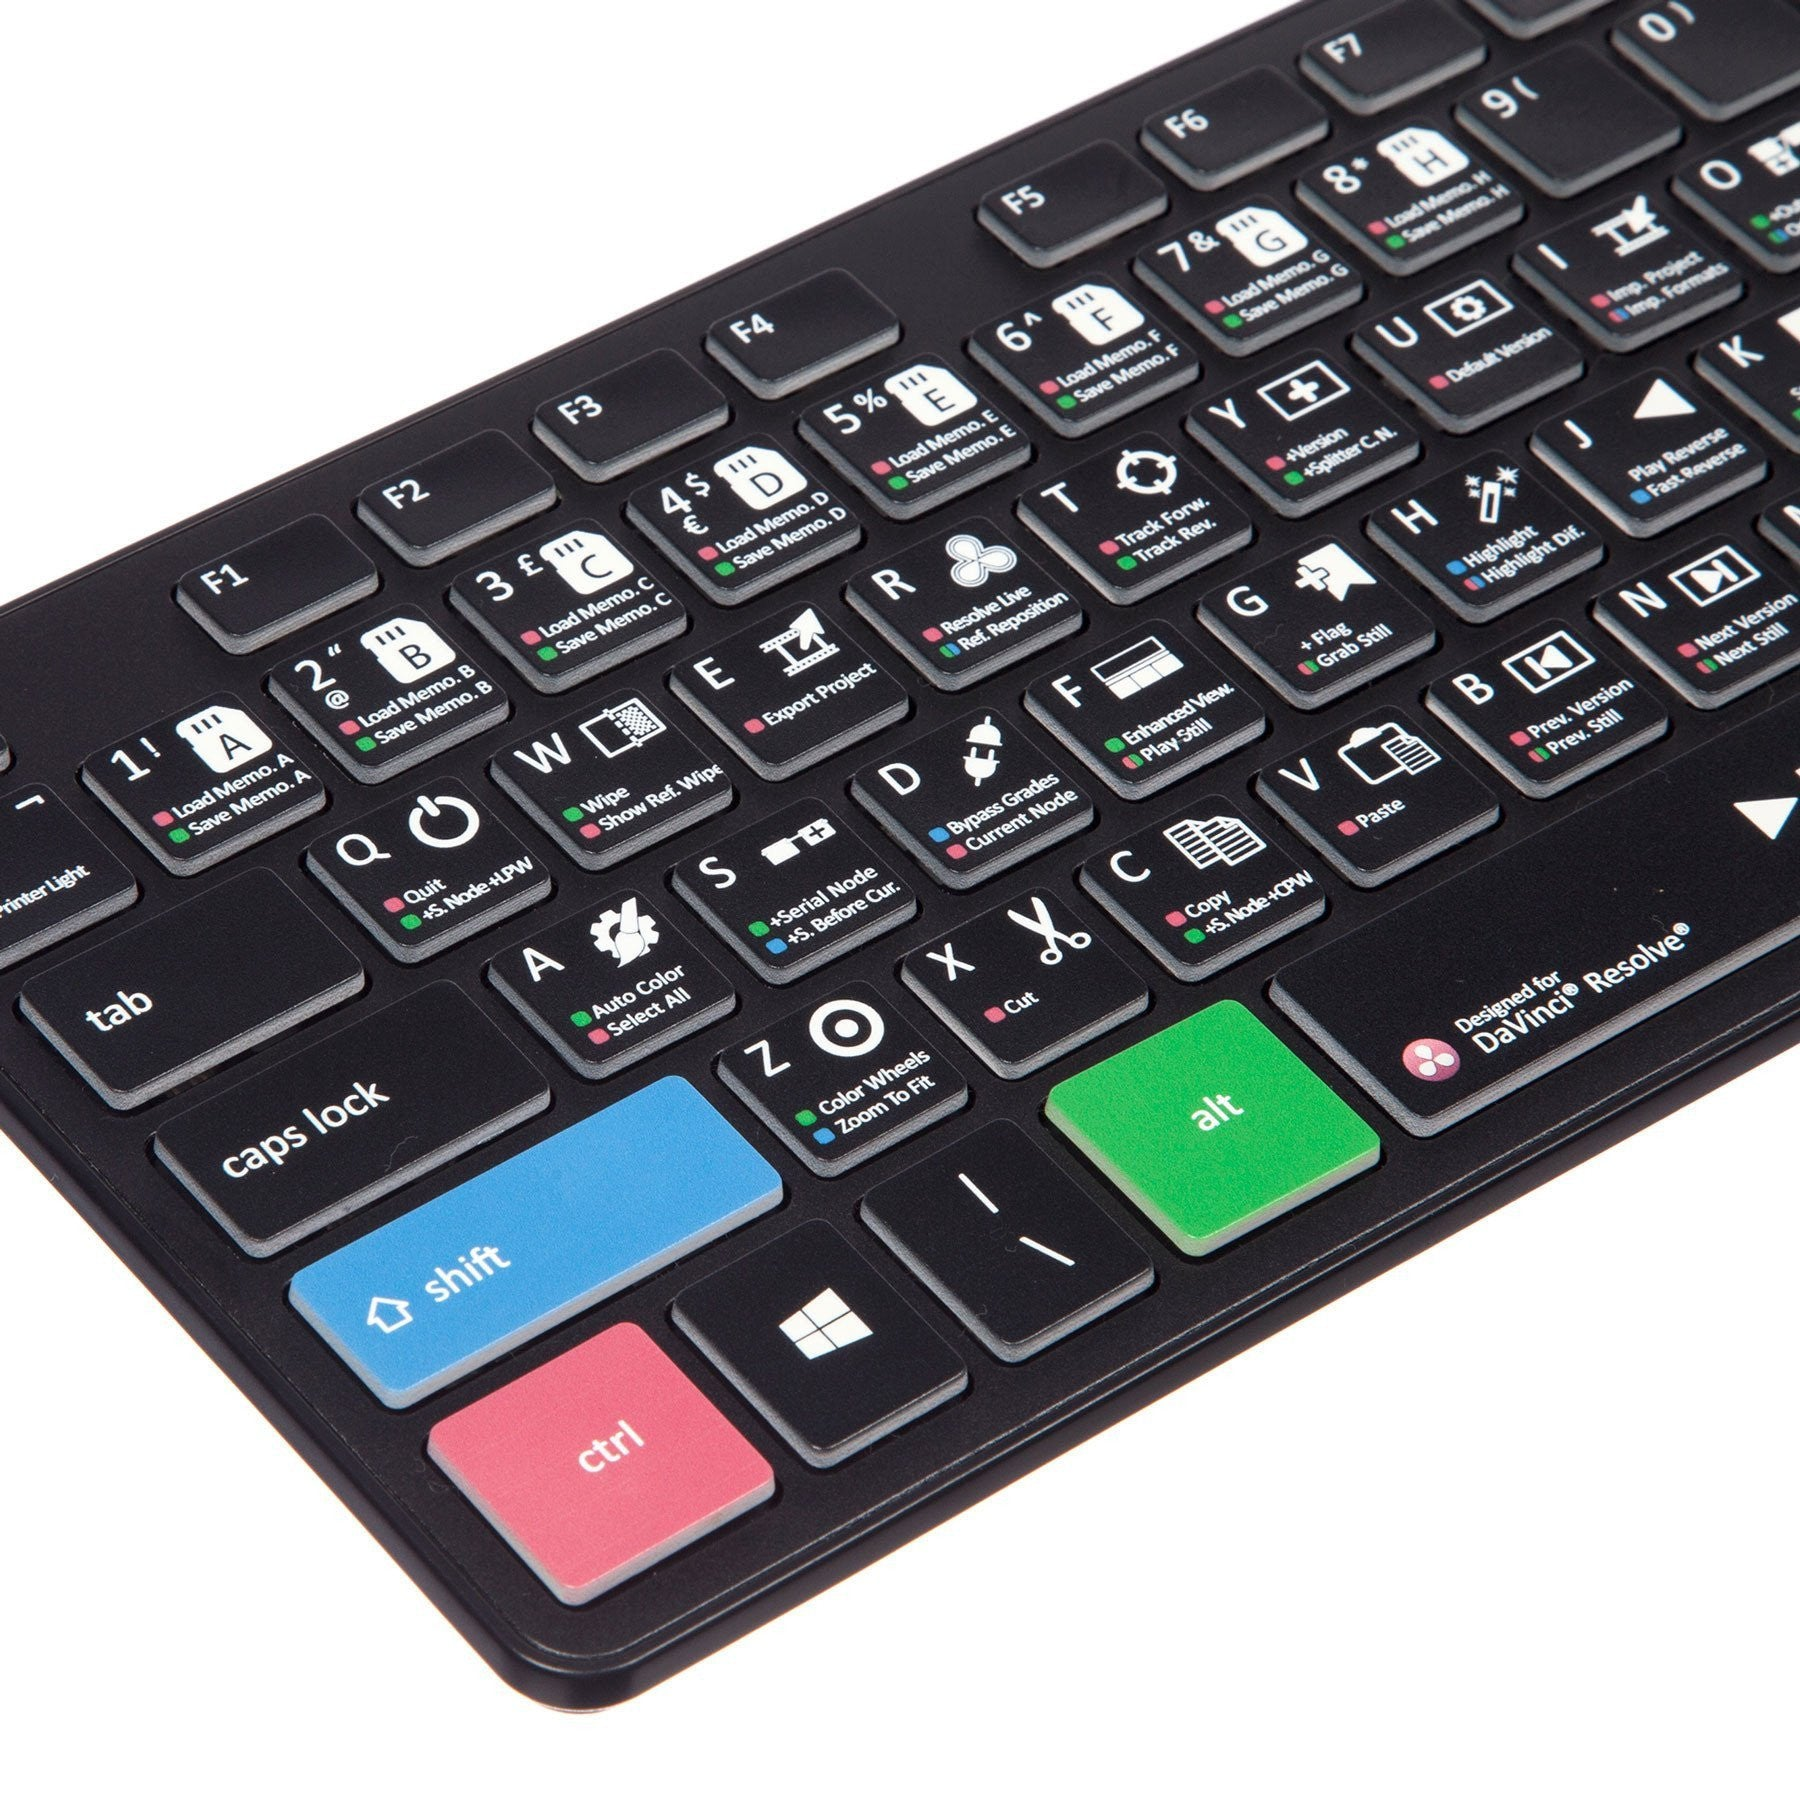 DaVinci Resolve Keyboard - Slimline Wired/Wireless